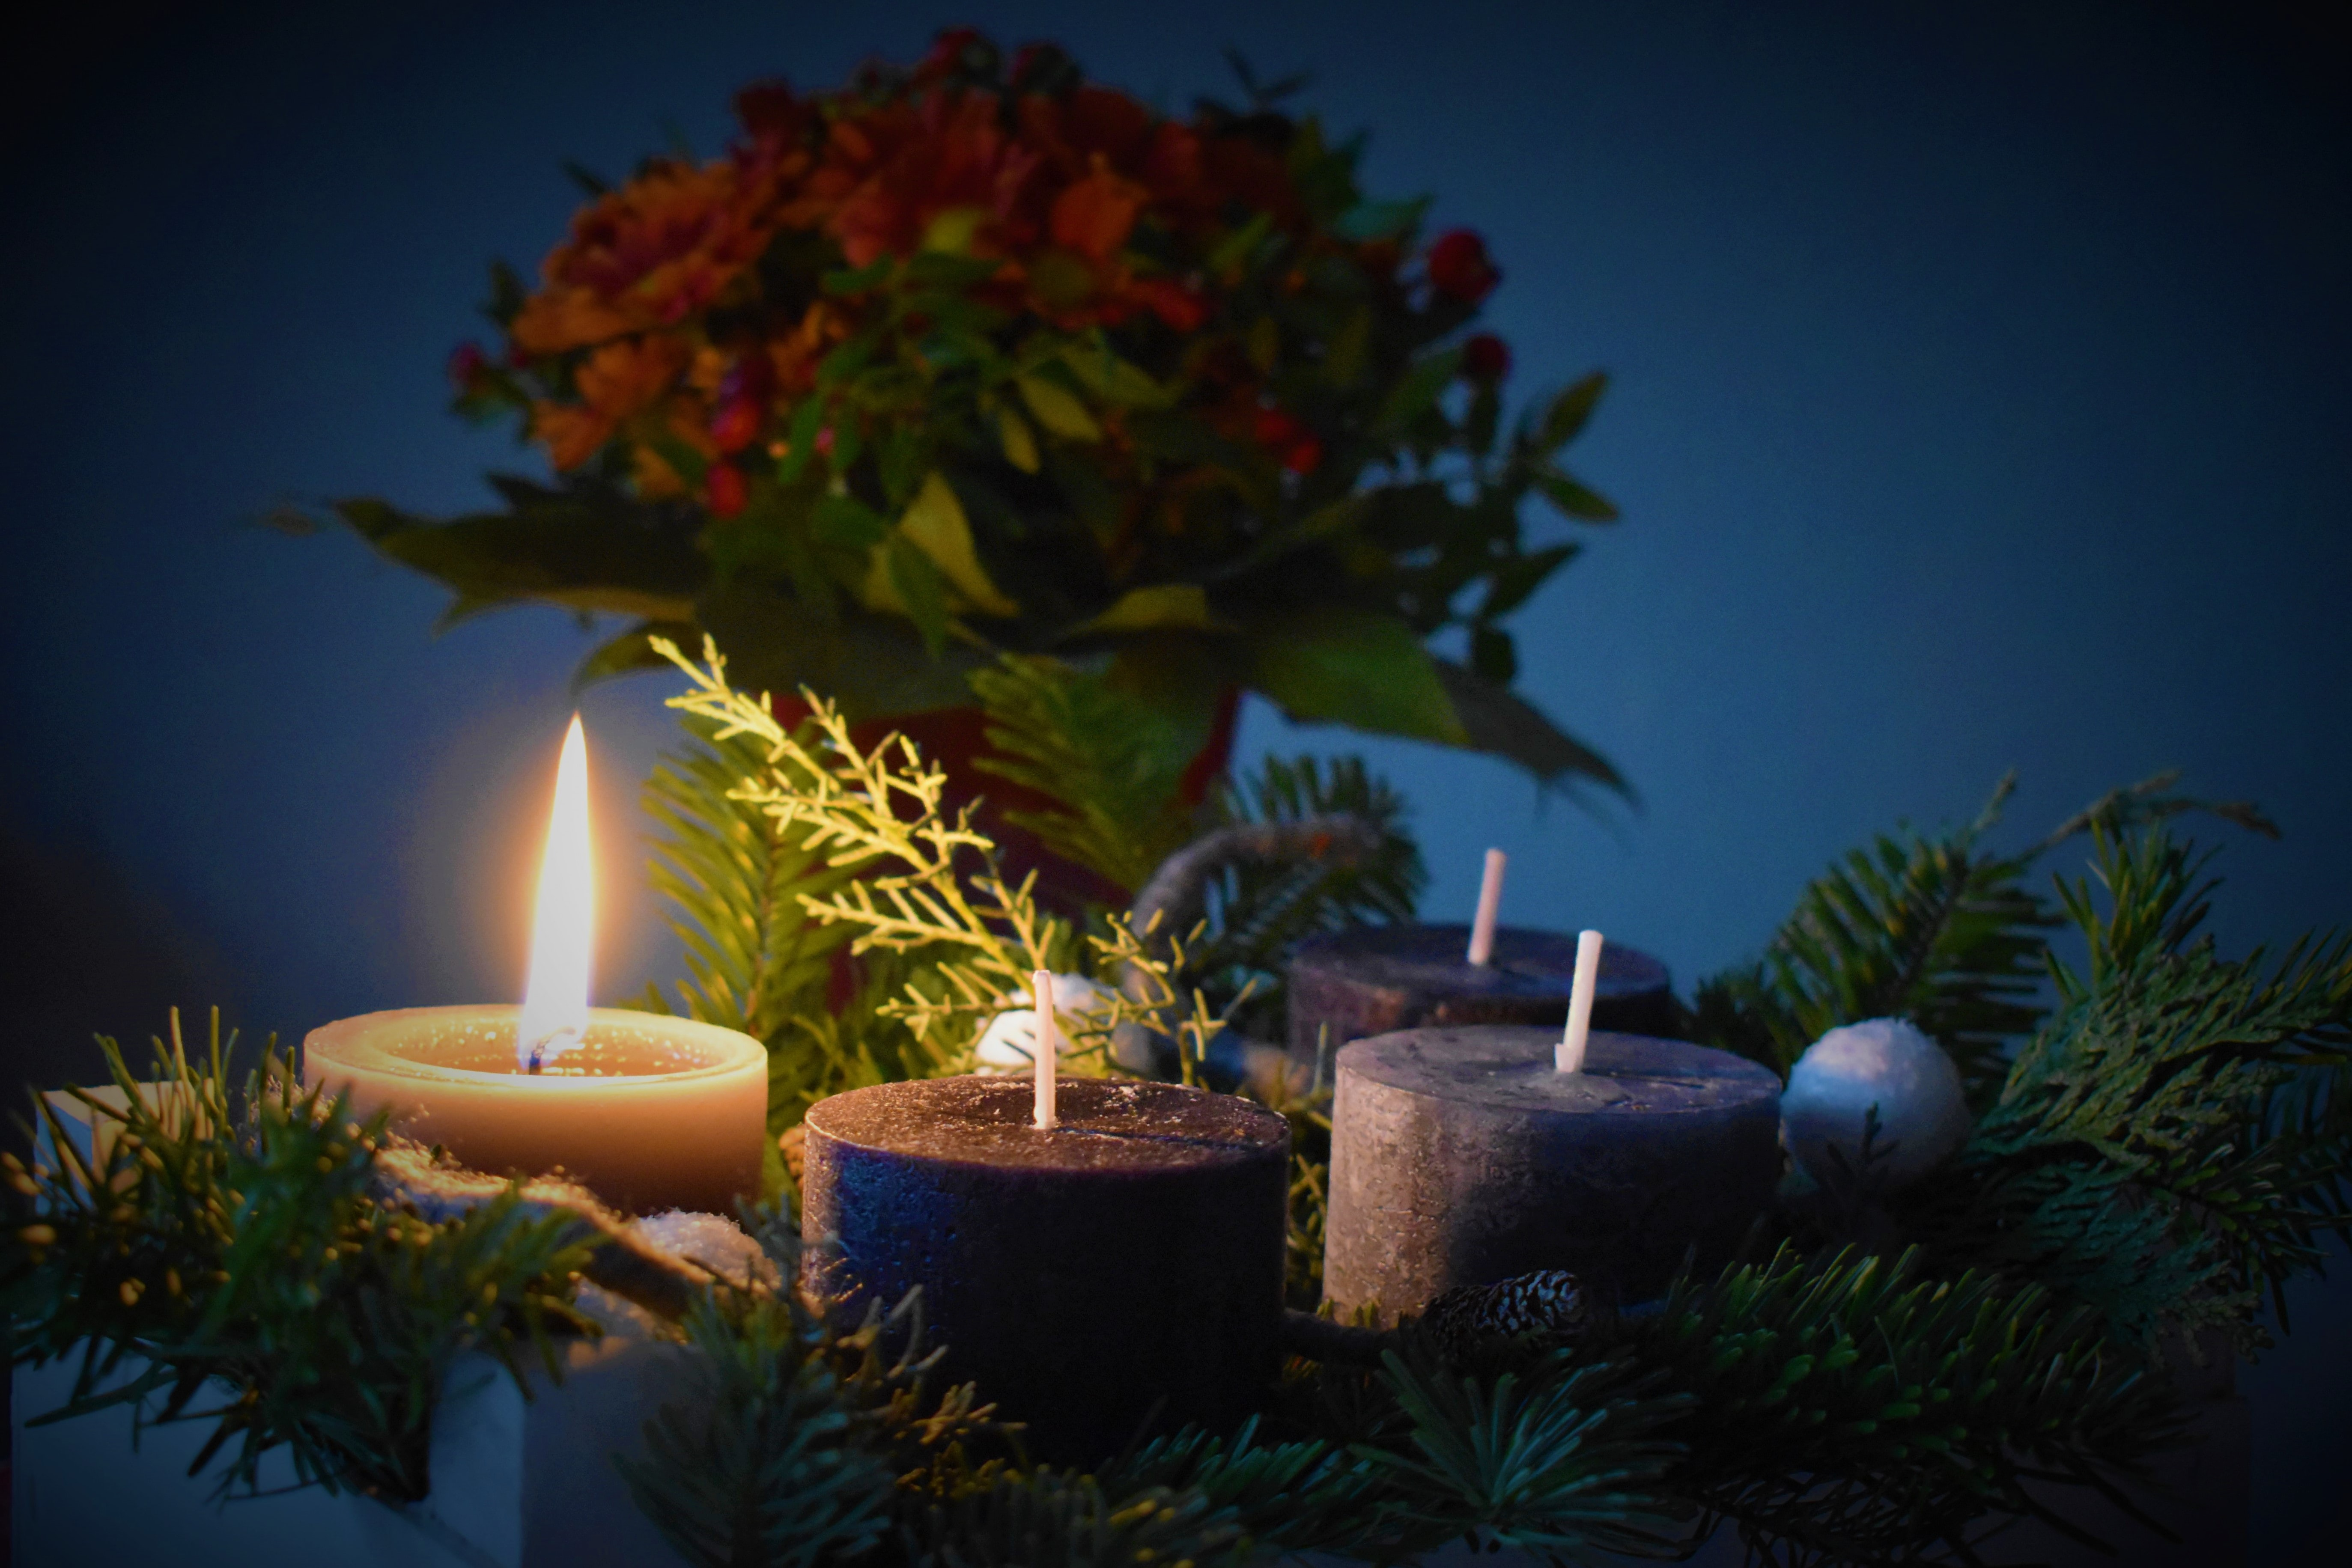 nestled into an evergreen wreath is a lit white candle and three unlit purple candles